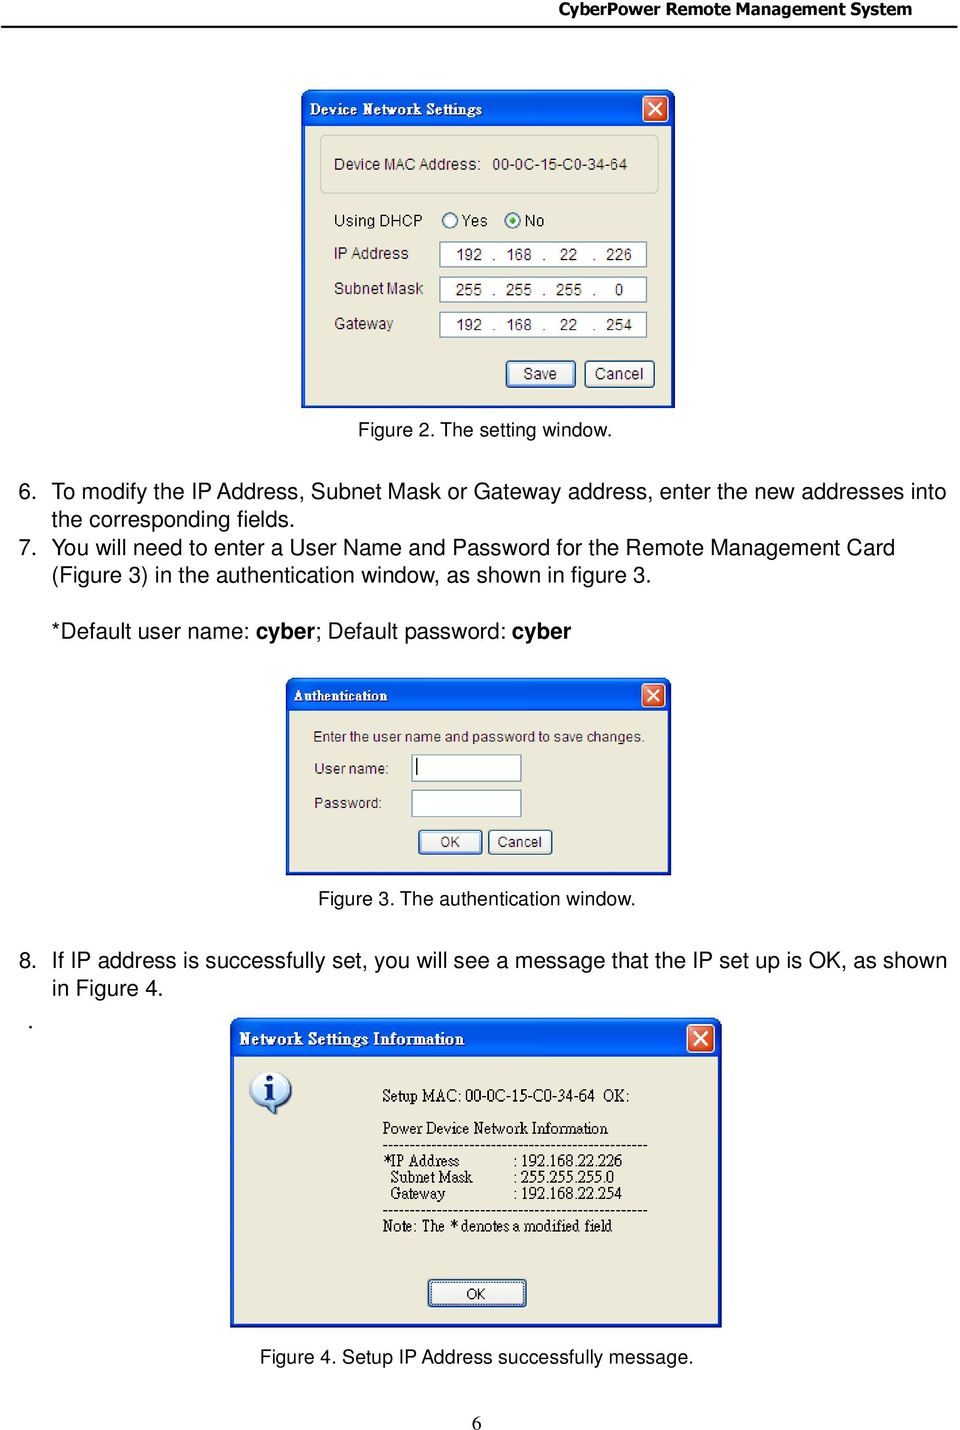 You will need to enter a User Name and Password for the Remote Management Card (Figure 3) in the authentication window, as shown in